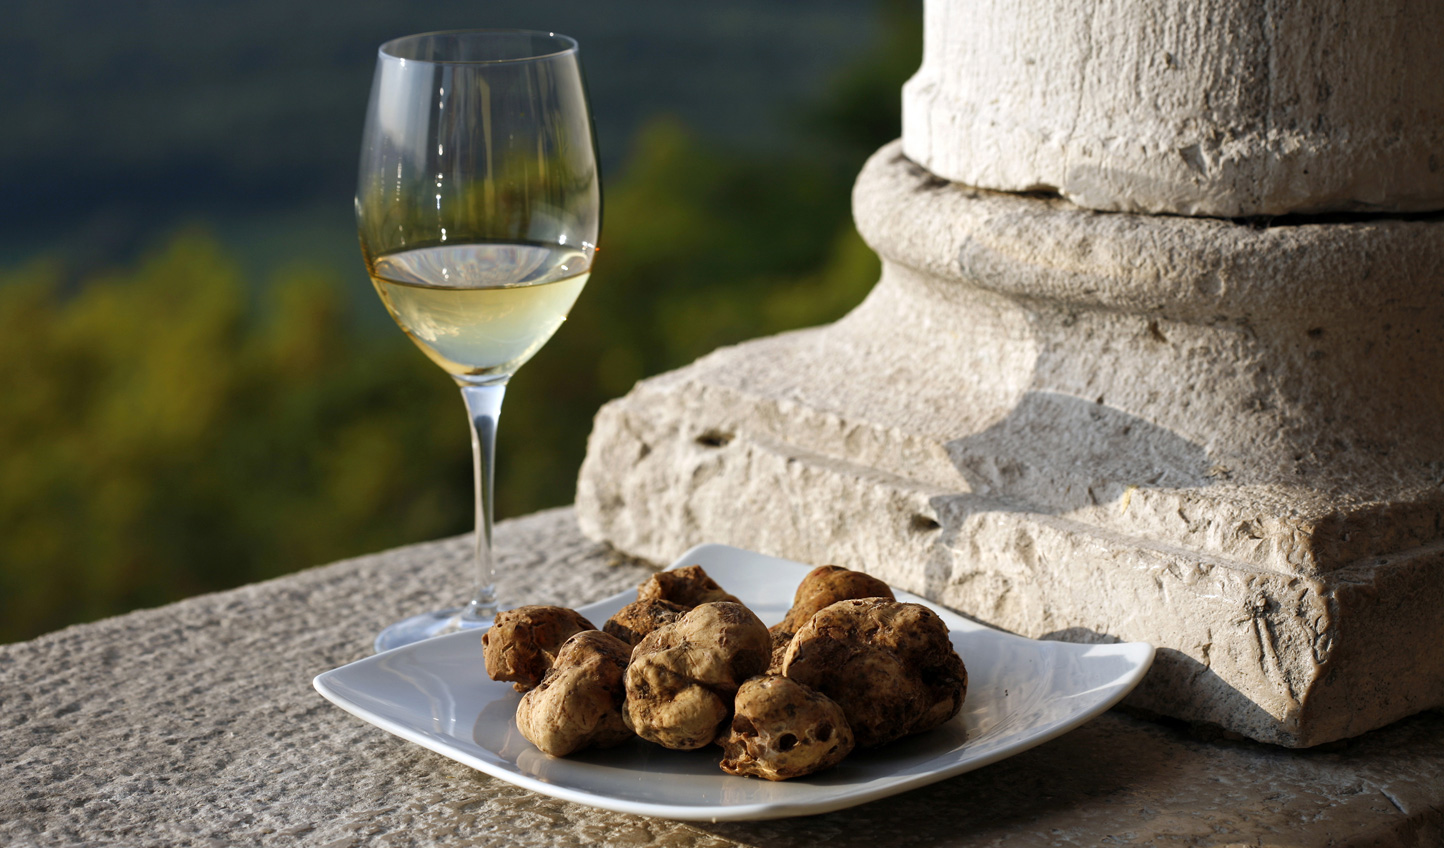 Sample fine wines and indulgent truffles